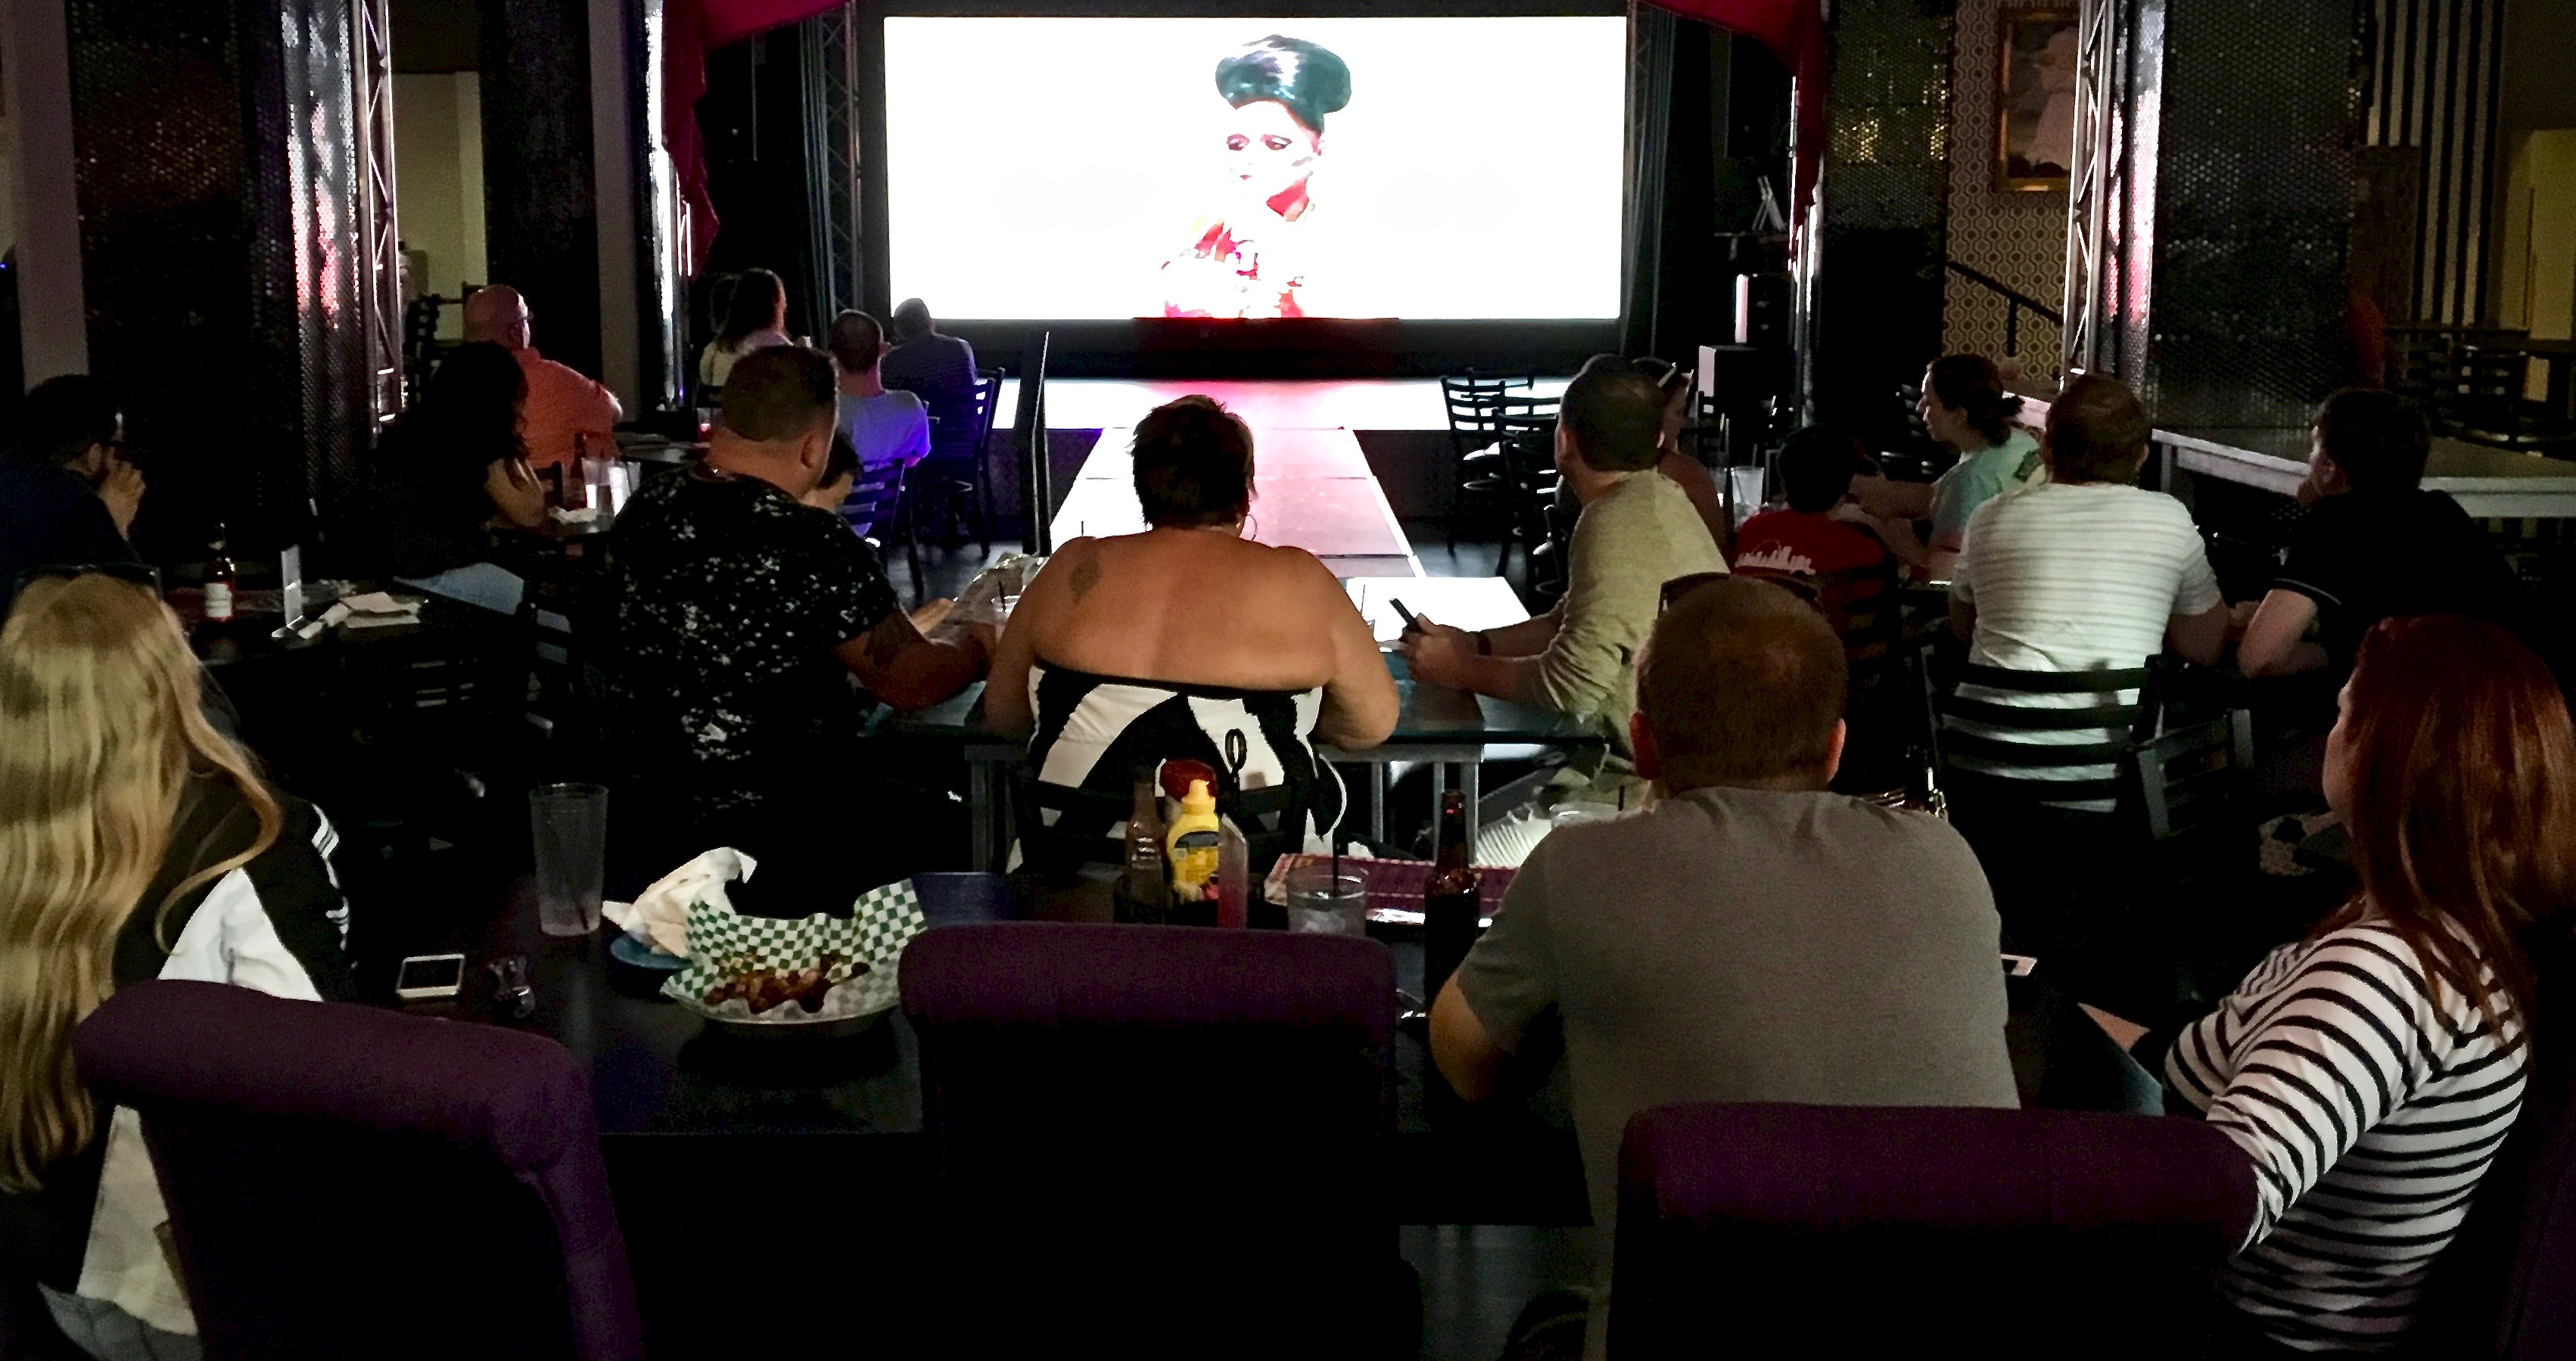 Screening The Queens